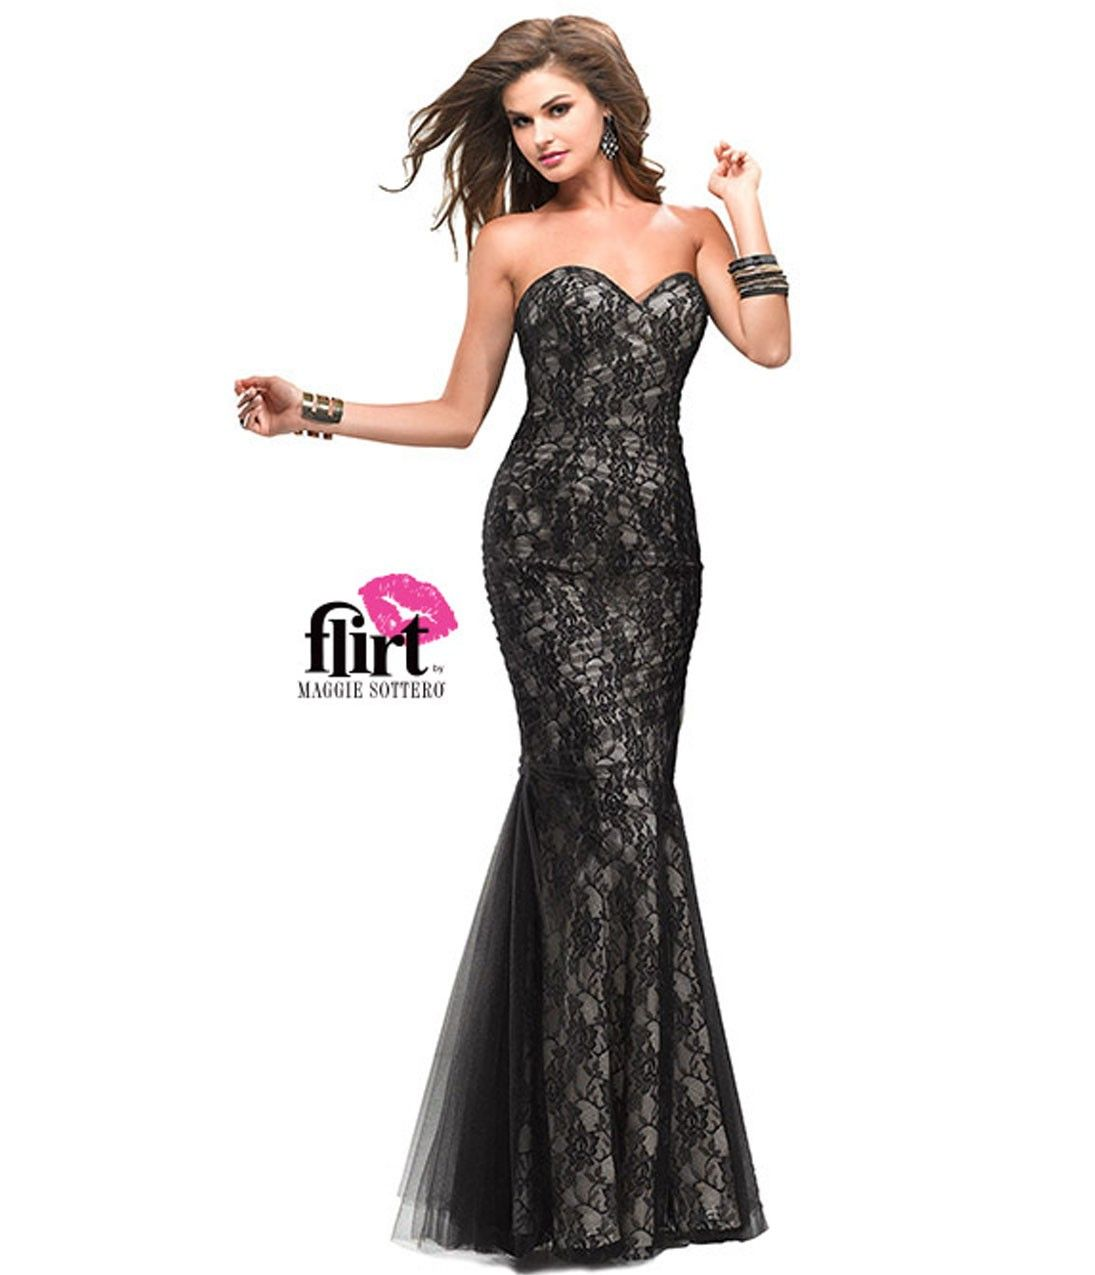 Prom Dress 2014 Collection Strapless Gown With Lace: Flirt By Maggie Sottero 2013 Prom Dresses